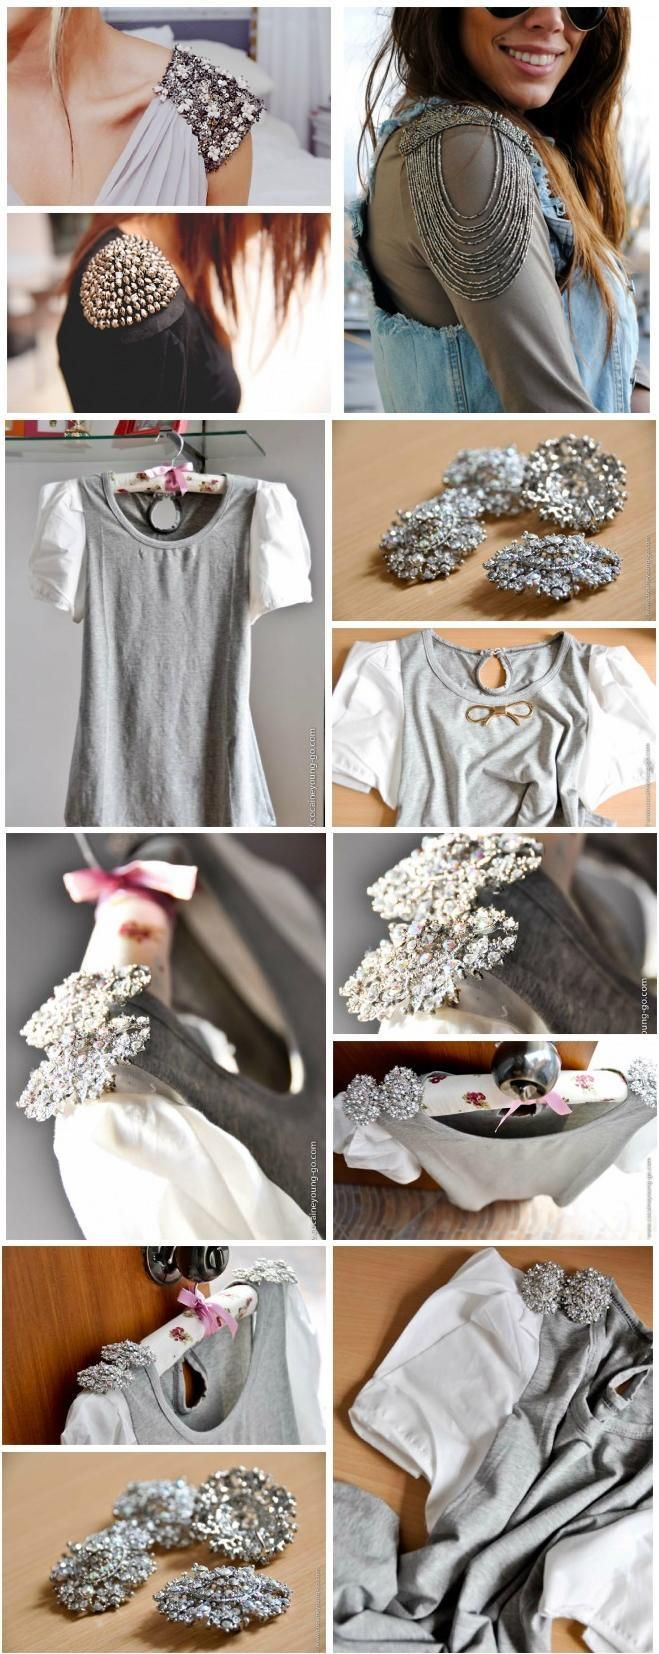 DIY: Embellished Shoulders